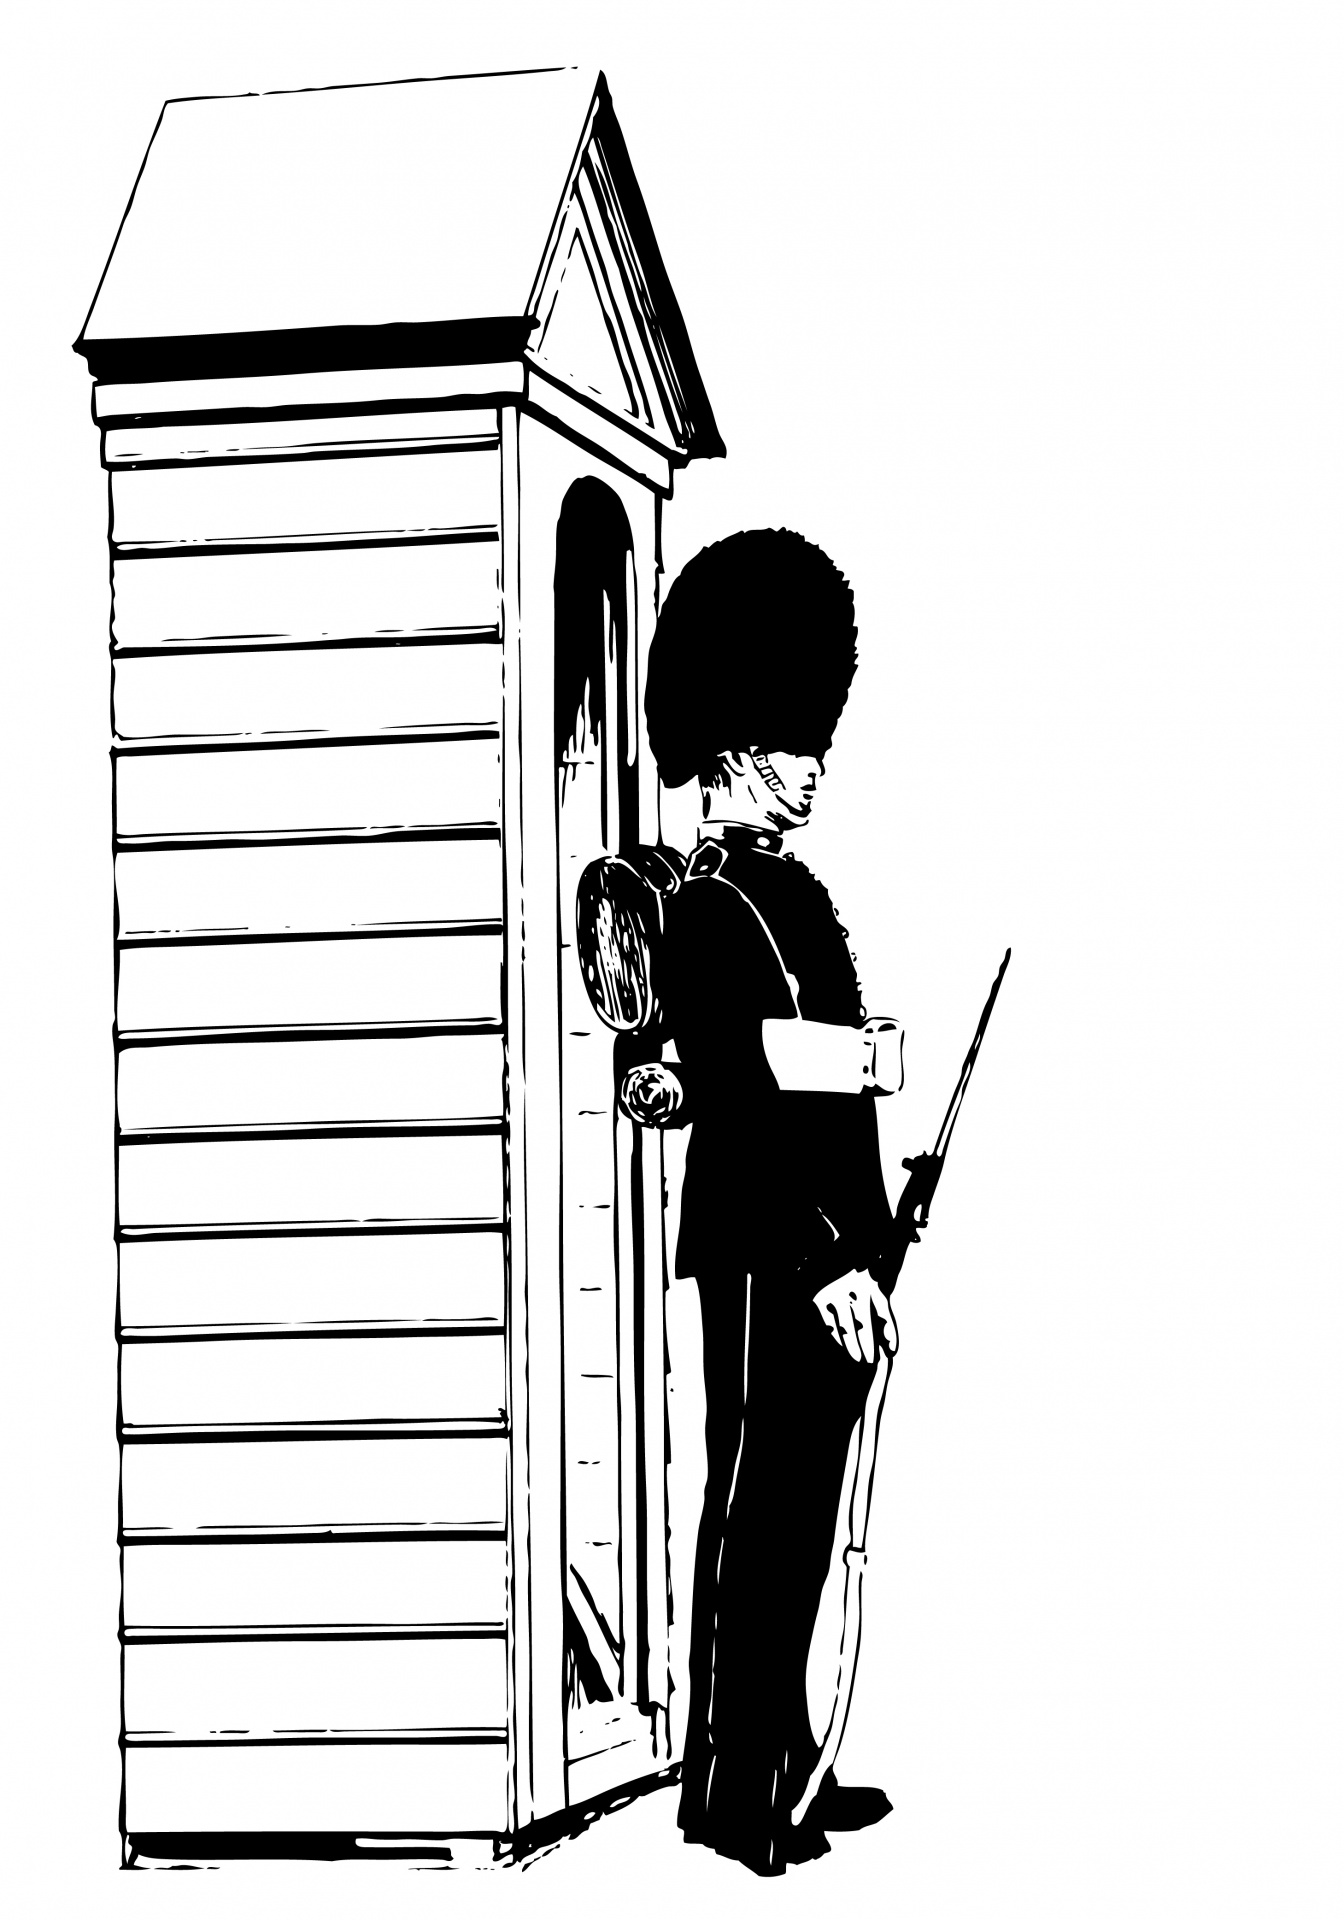 Sentry illustration free stock. Guard clipart image black and white download